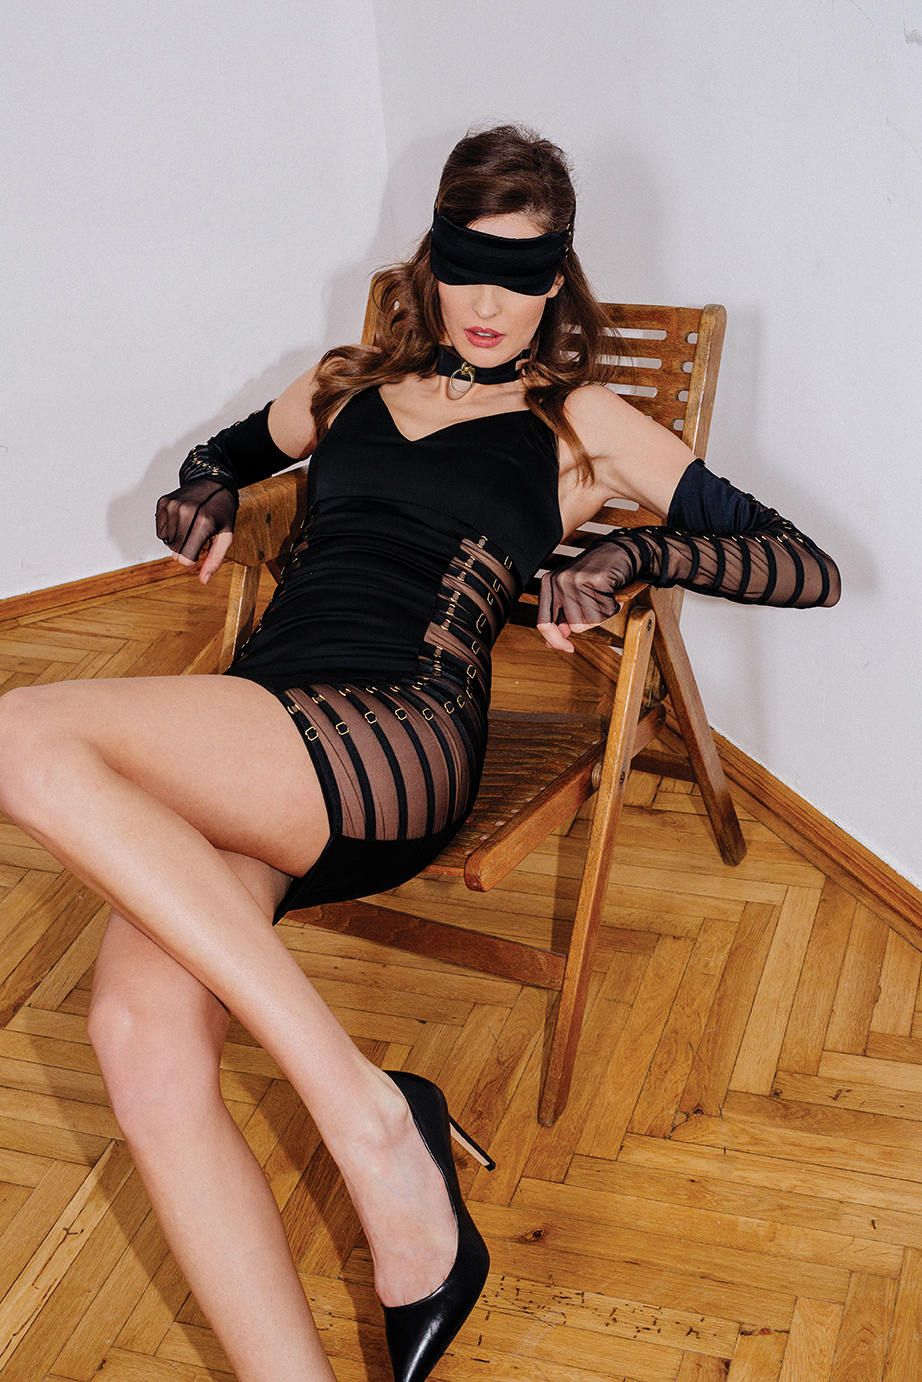 Prison Dress - ROLEPLAY COLLECTION.JPG